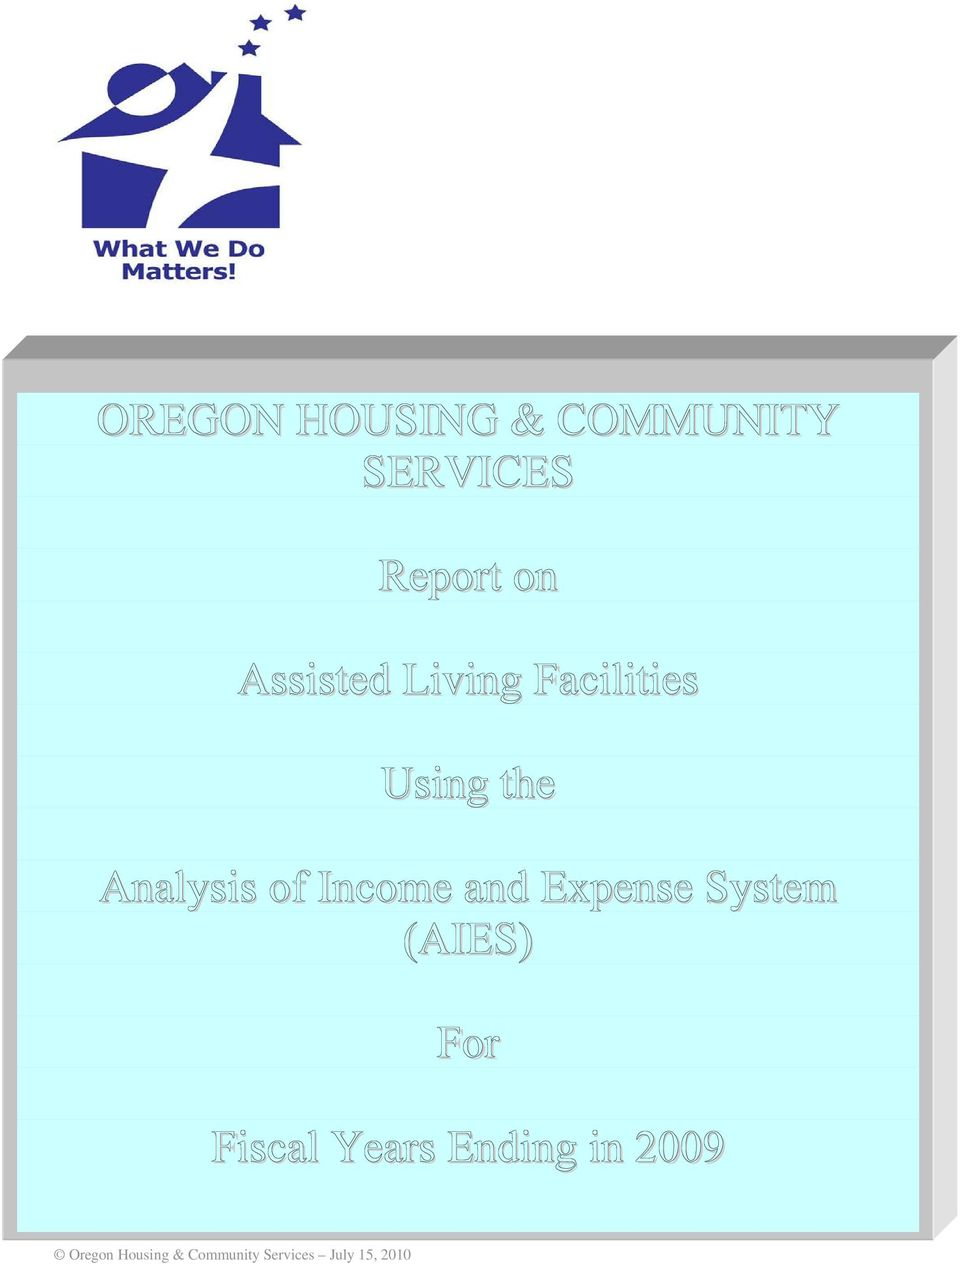 Facilities Using the Analysis of Income and